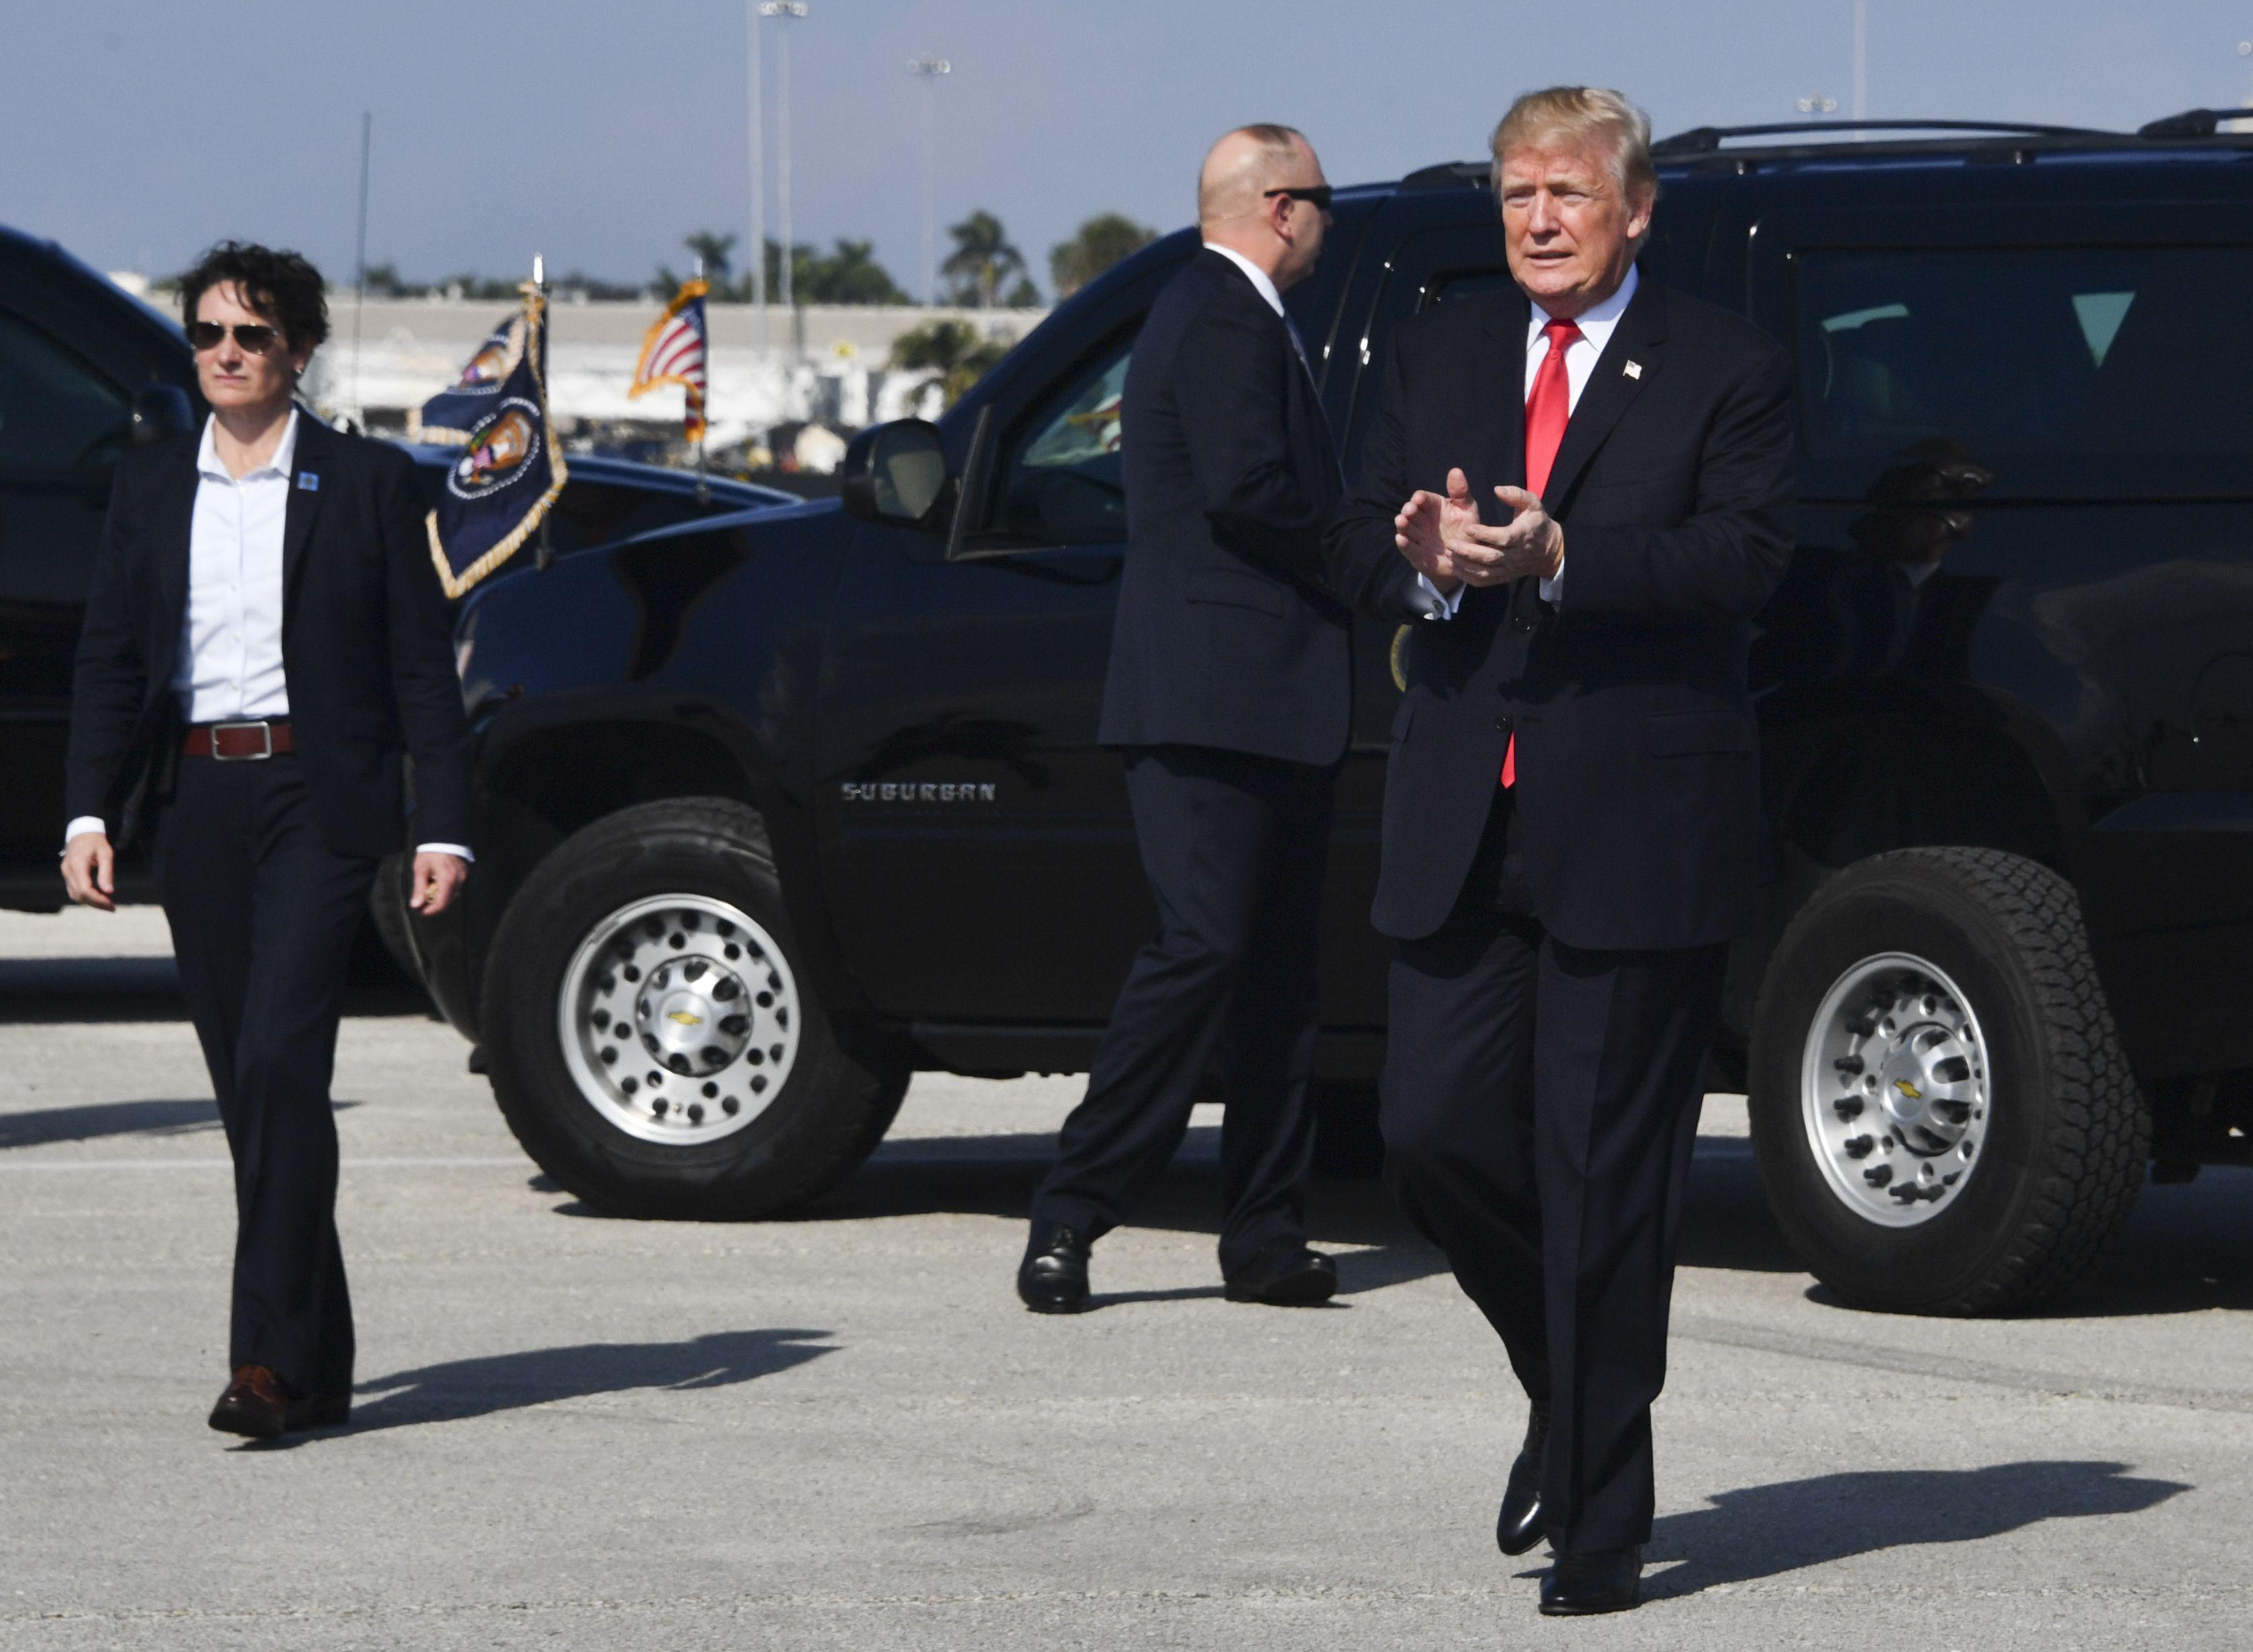 United States President Donald J. Trump walks to greet supporters during his arrival at Palm Beach International Airport in Palm Beach, Florida on December 22, 2017.  / AFP PHOTO / Nicholas Kamm